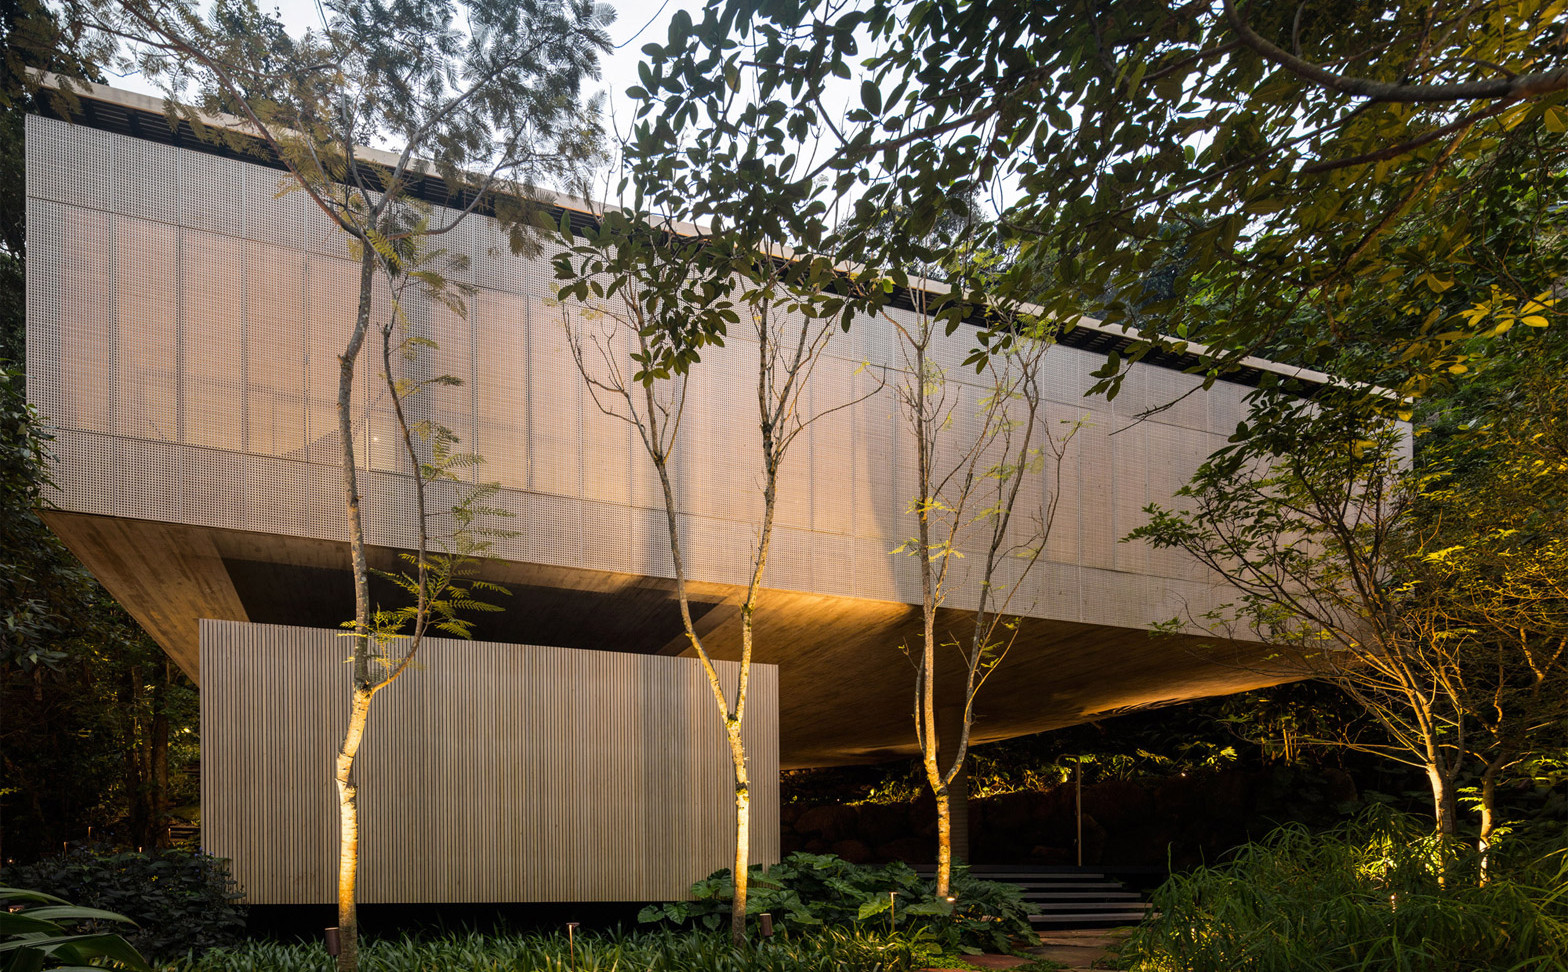 jungle-house-mk27-brazil-rainforest-fernando-guerra-extra_dezeen_1568_22